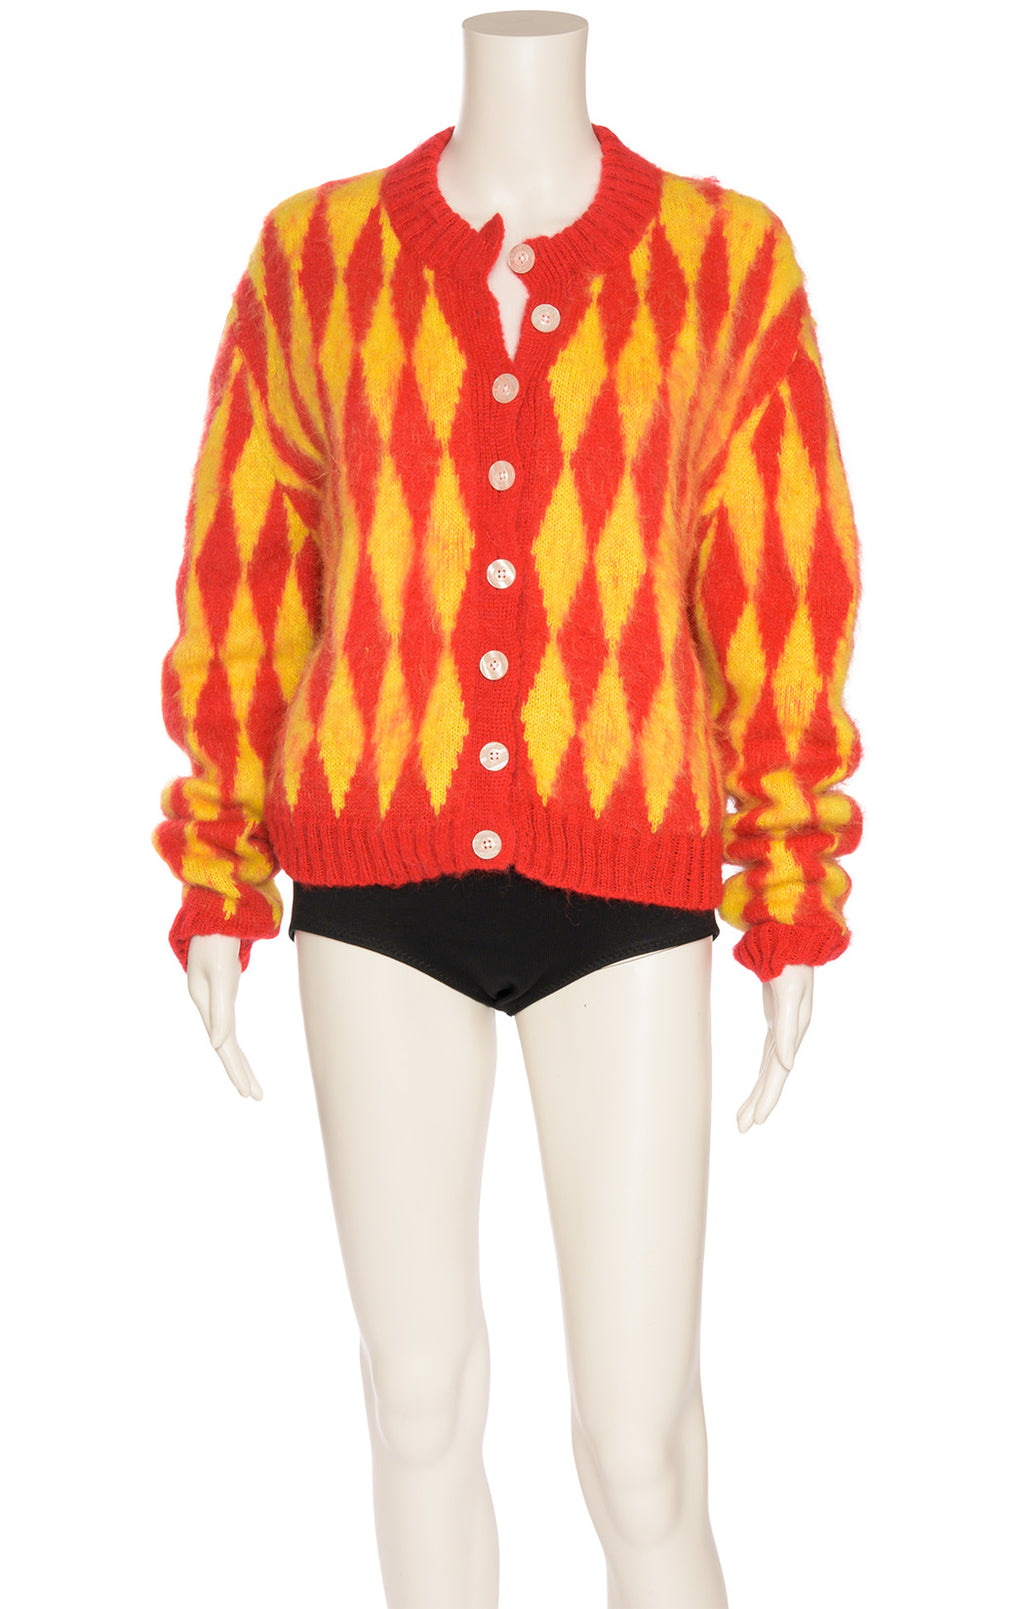 Red and yellow long sleeve button down cardigan